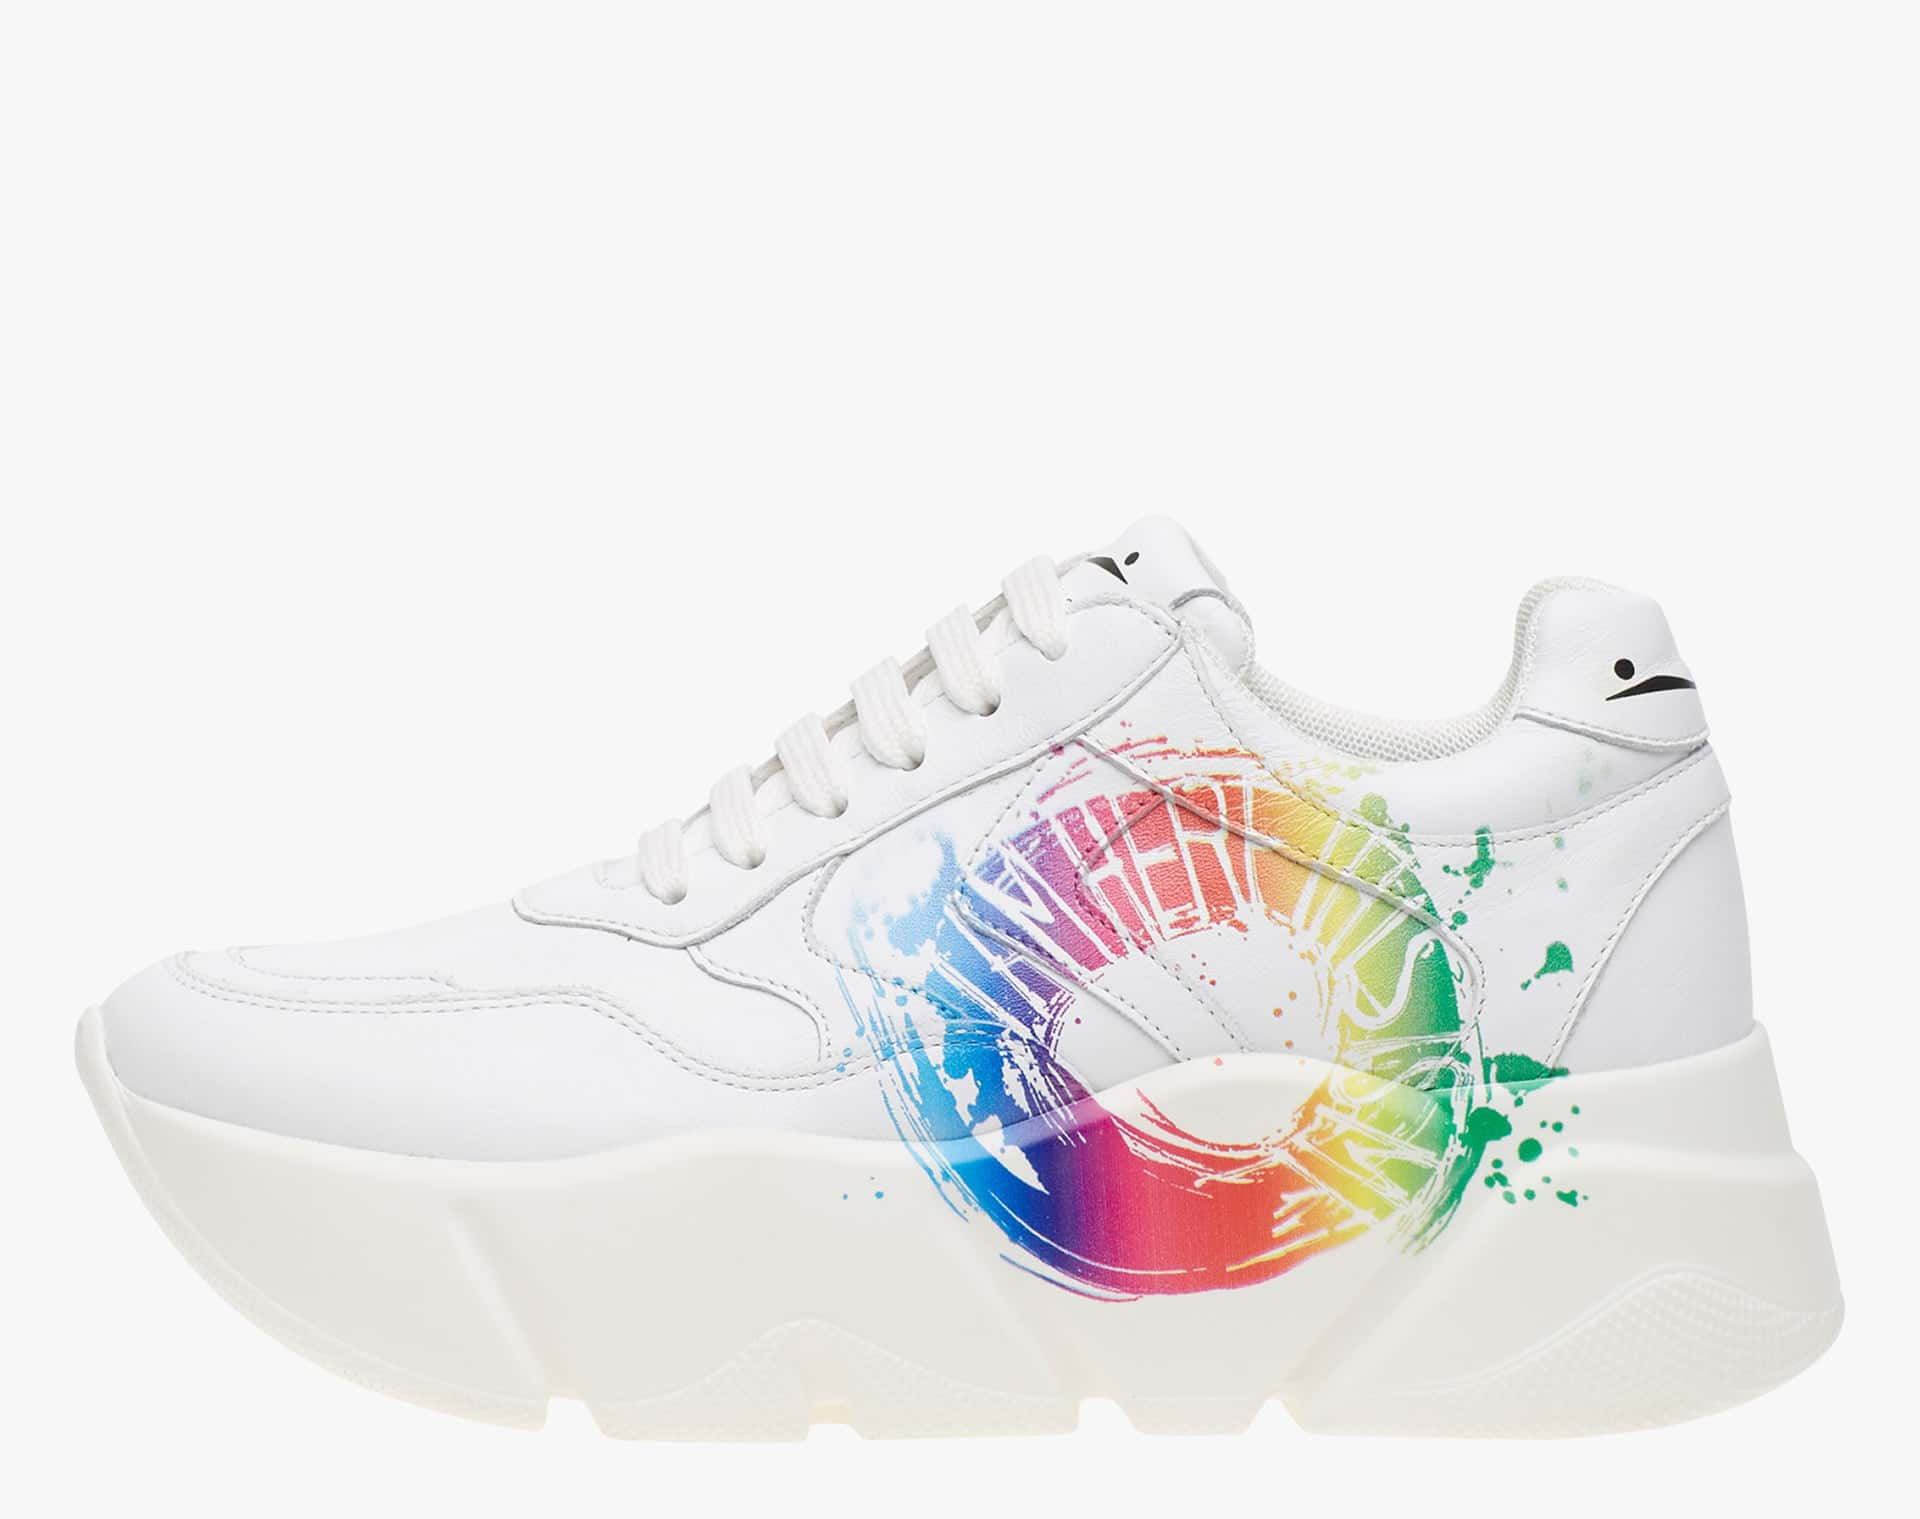 MONSTER PRINT - Calfskin sneakers with contrasting print - White